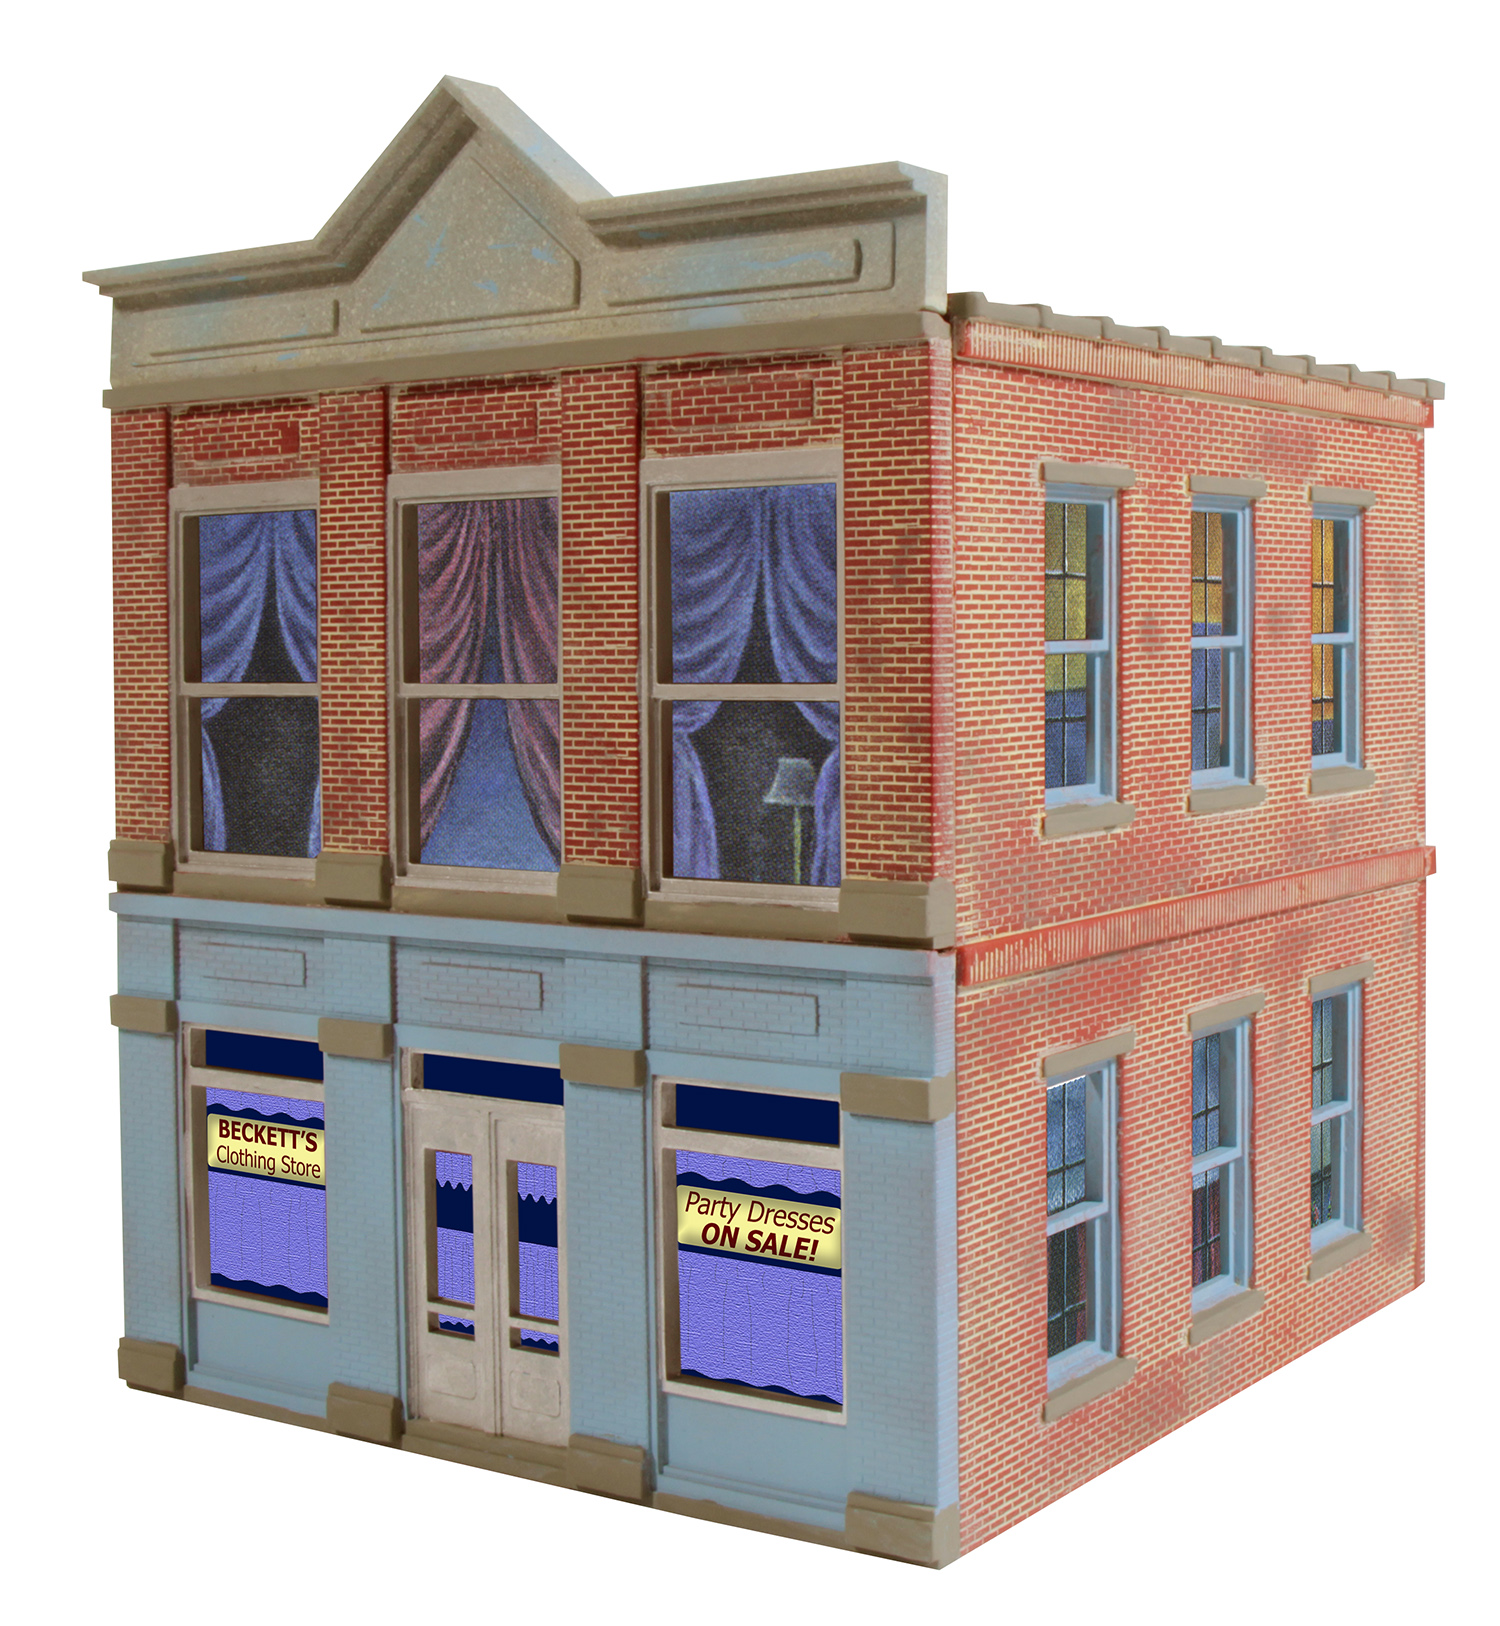 OGR 821 O Ameri-Towne Beckett's Clothing Building Kit This is a OGR Publishing Inc 92-821 O Scale Ameri-Towne Beckett's Clothing - Kit (Plastic) 6 x 6 x 4 15.2 x 15.2 x 20.4cmCondition: Factory New (C-9All original; unused; factory rubs and evidence of handling, shipping and factory test run.Standards for all toy train related accessory items apply to the visual appearance of the item and do not consider the operating functionality of the equipment.Condition and Grading Standards are subjective, at best, and are intended to act as a guide. )Operational Status: FunctionalThis item is brand new from the factory.Original Box: Yes (P-9May have store stamps and price tags. Has inner liners.)Manufacturer: OGRModel Number: 821MSRP: $31.95Scale/Era: O ModernModel Type: Accessories & BuildingsAvailability: Ships in 3 to 5 Business Days.The Trainz SKU for this item is P11648276. Track: 11648276 - FS - 001 - TrainzAuctionGroup00UNK - TDIDUNK